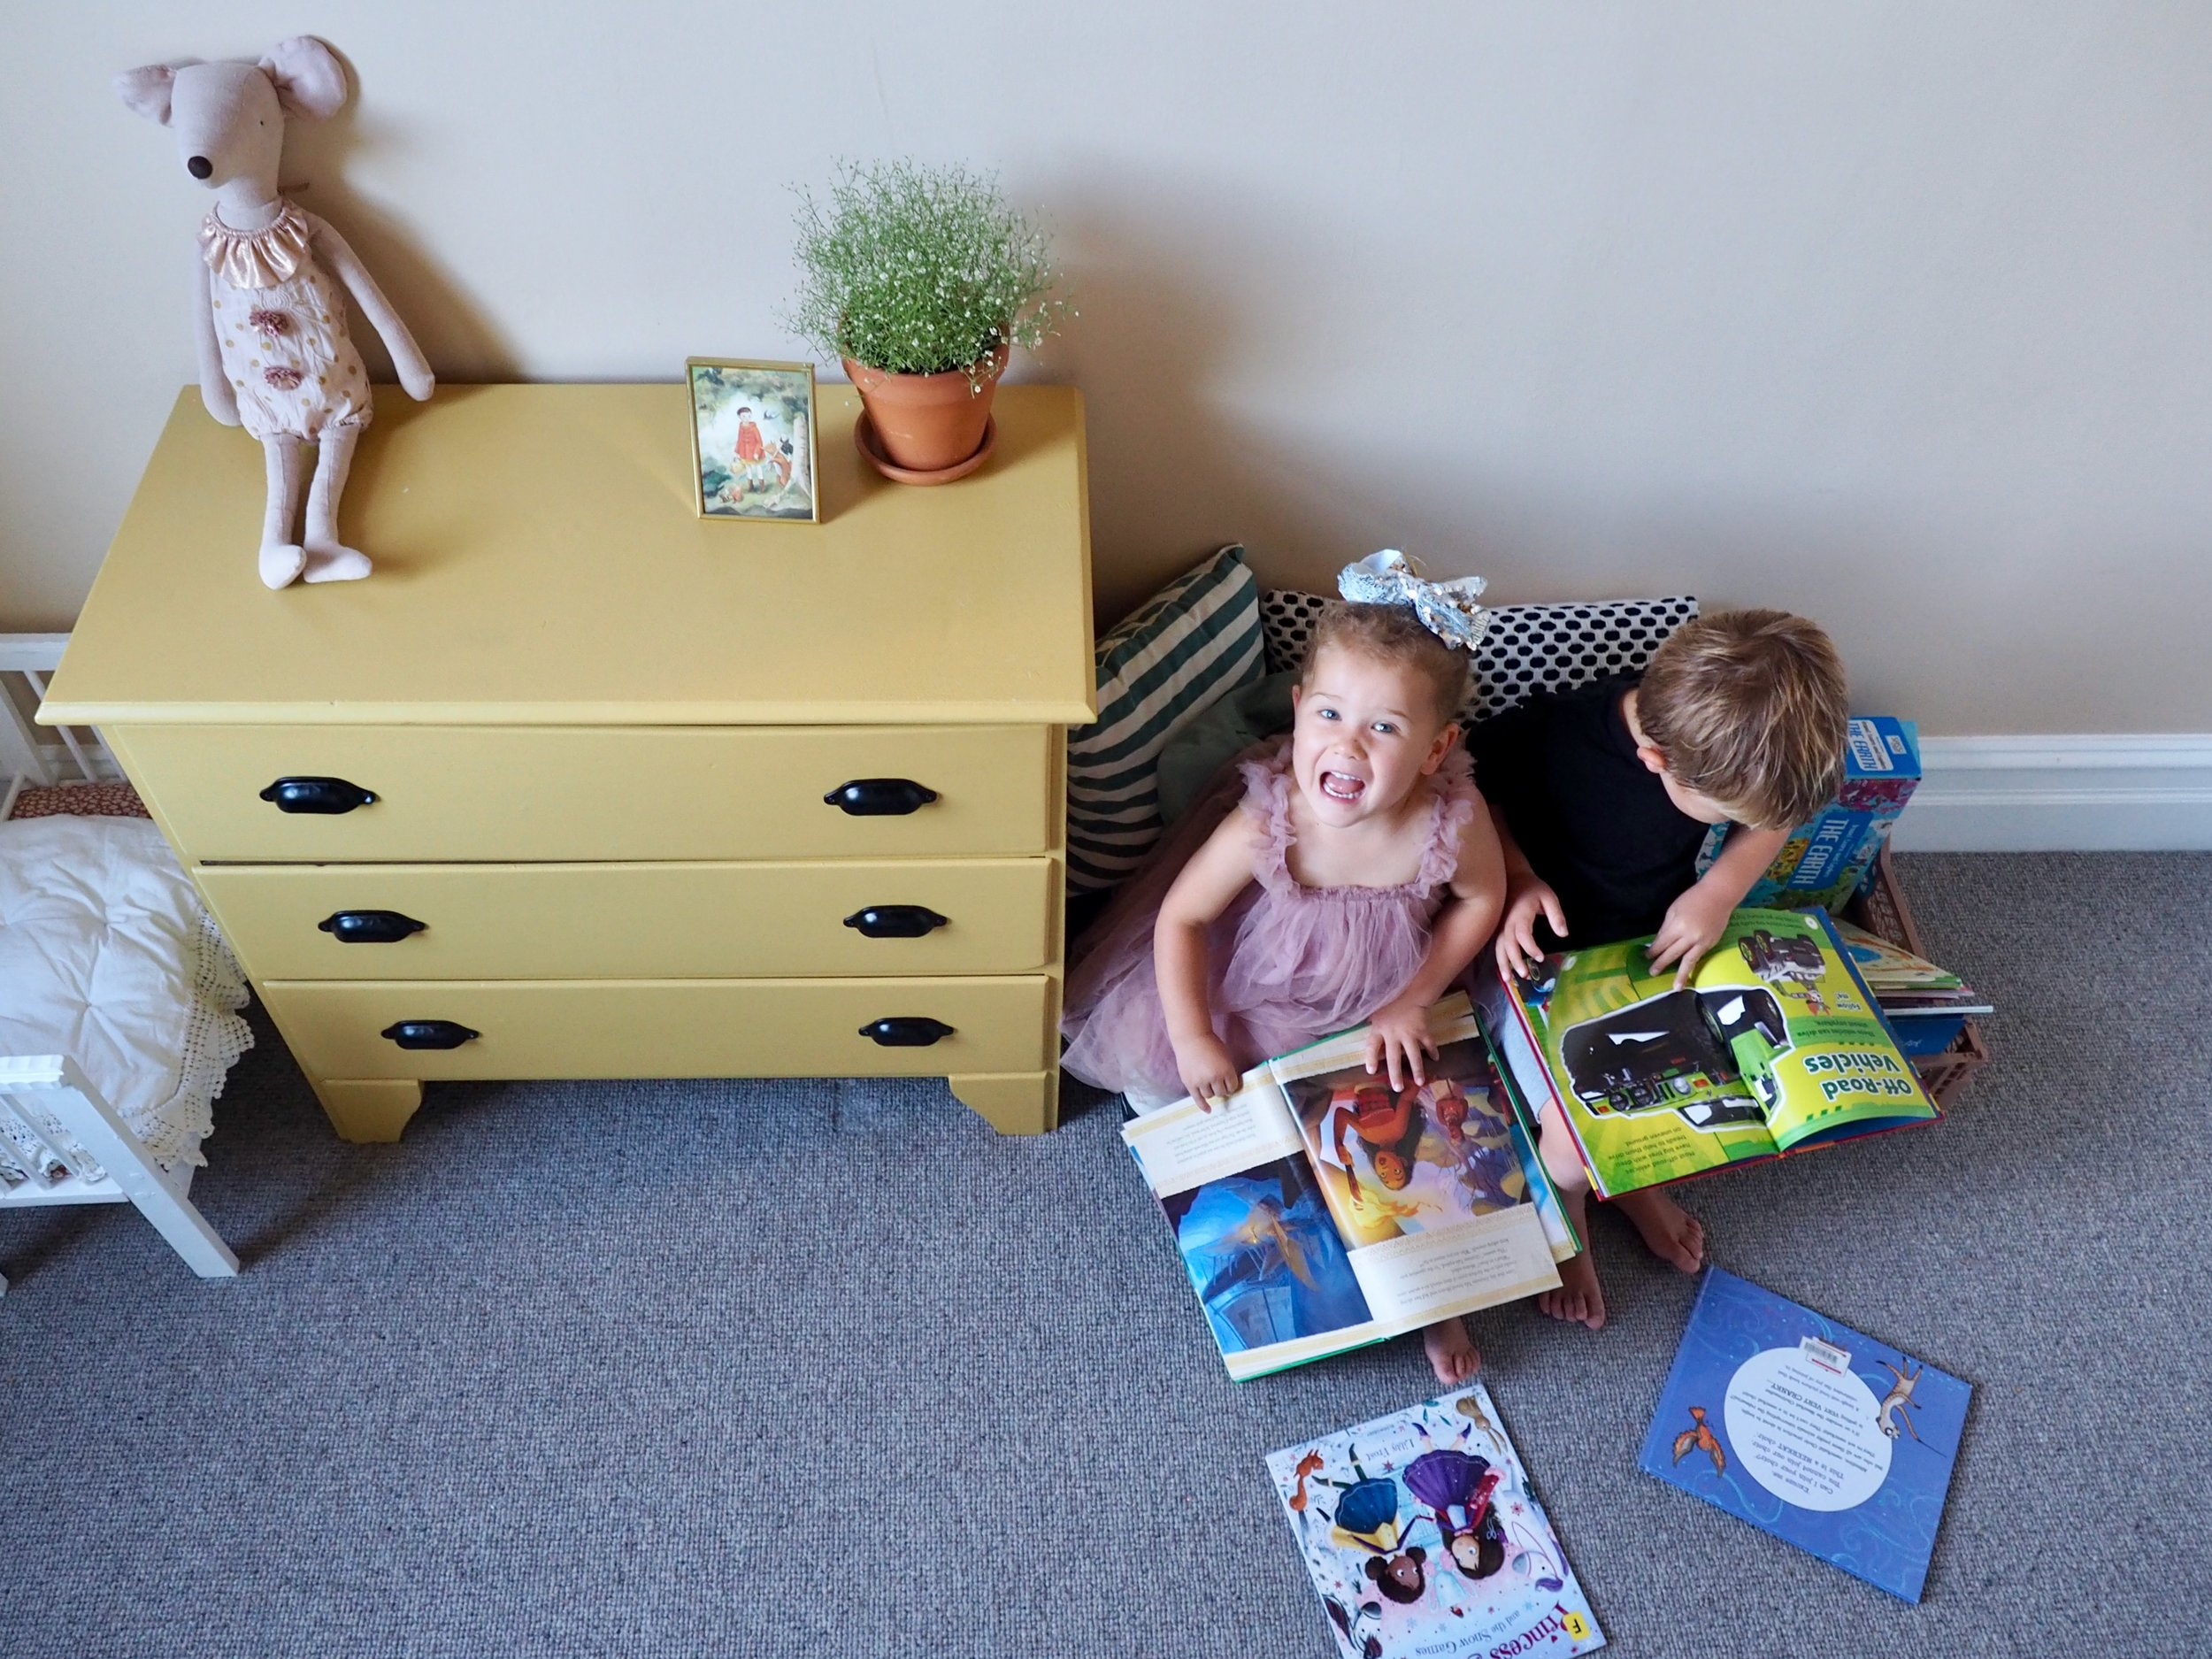 Pearson + Projects Shared Kids Bedroom Sand Resene - 71.jpg